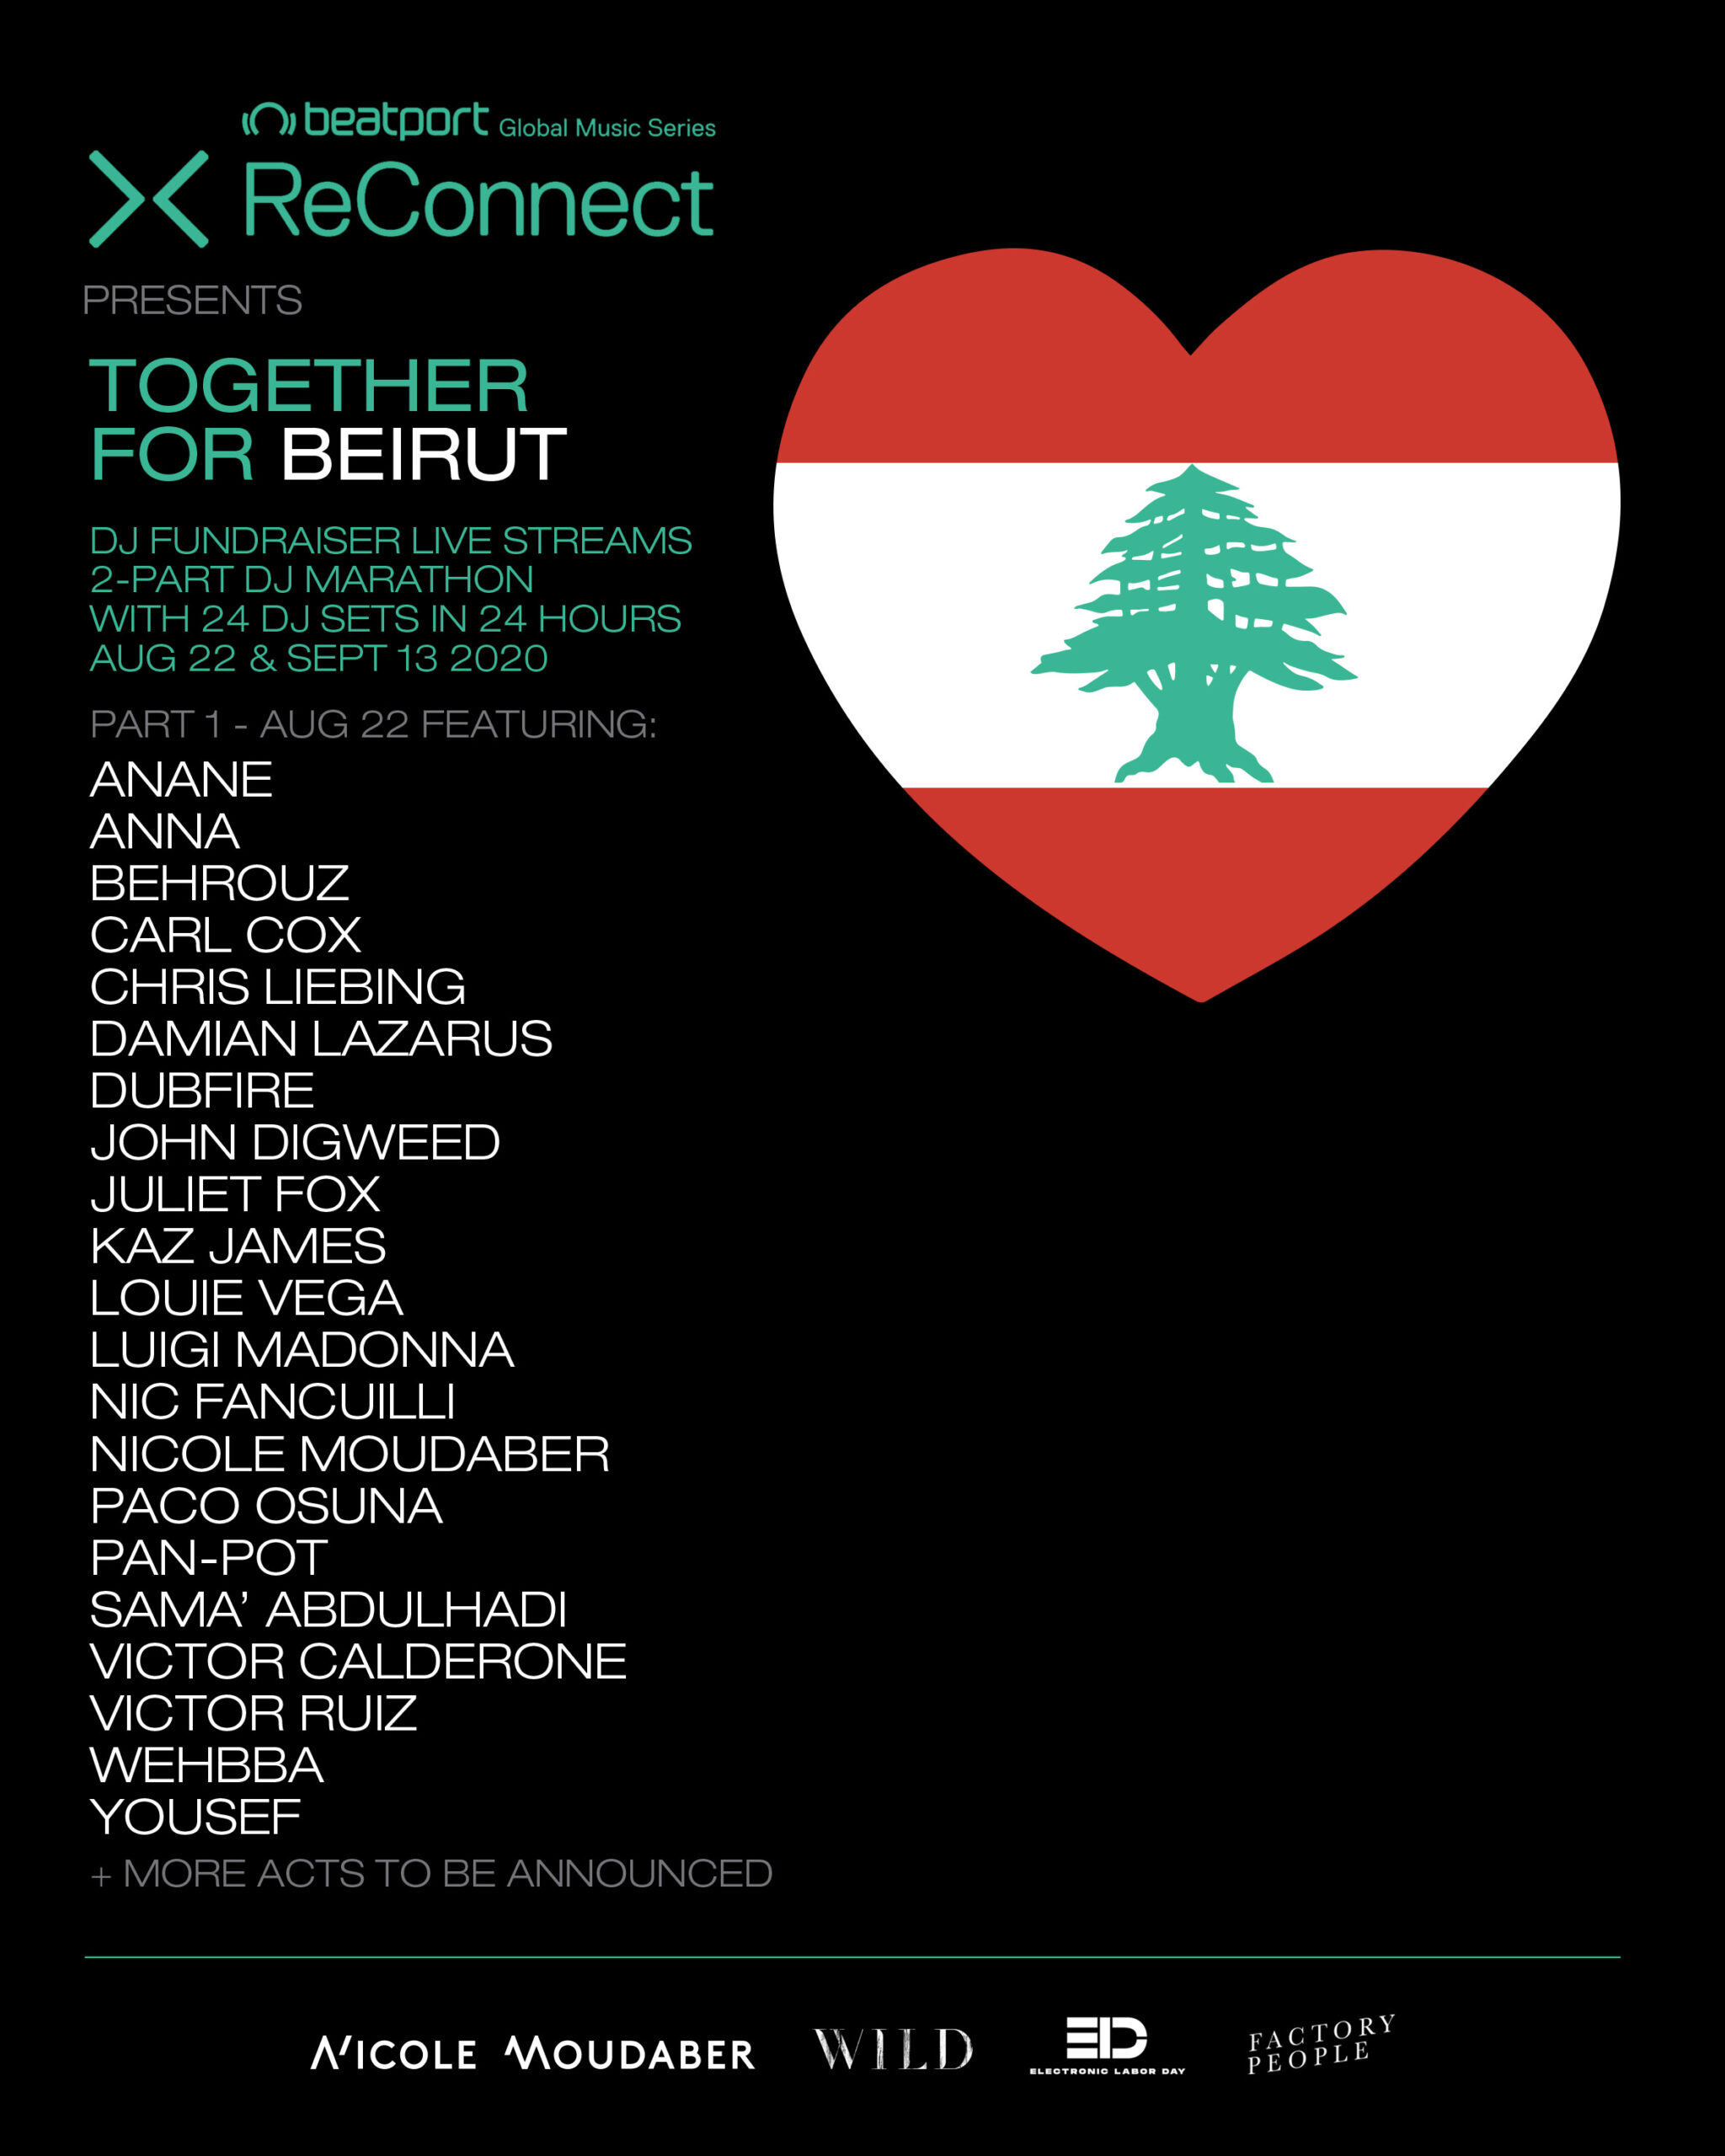 Beatport Reconnect presents 'Together for Beirut'